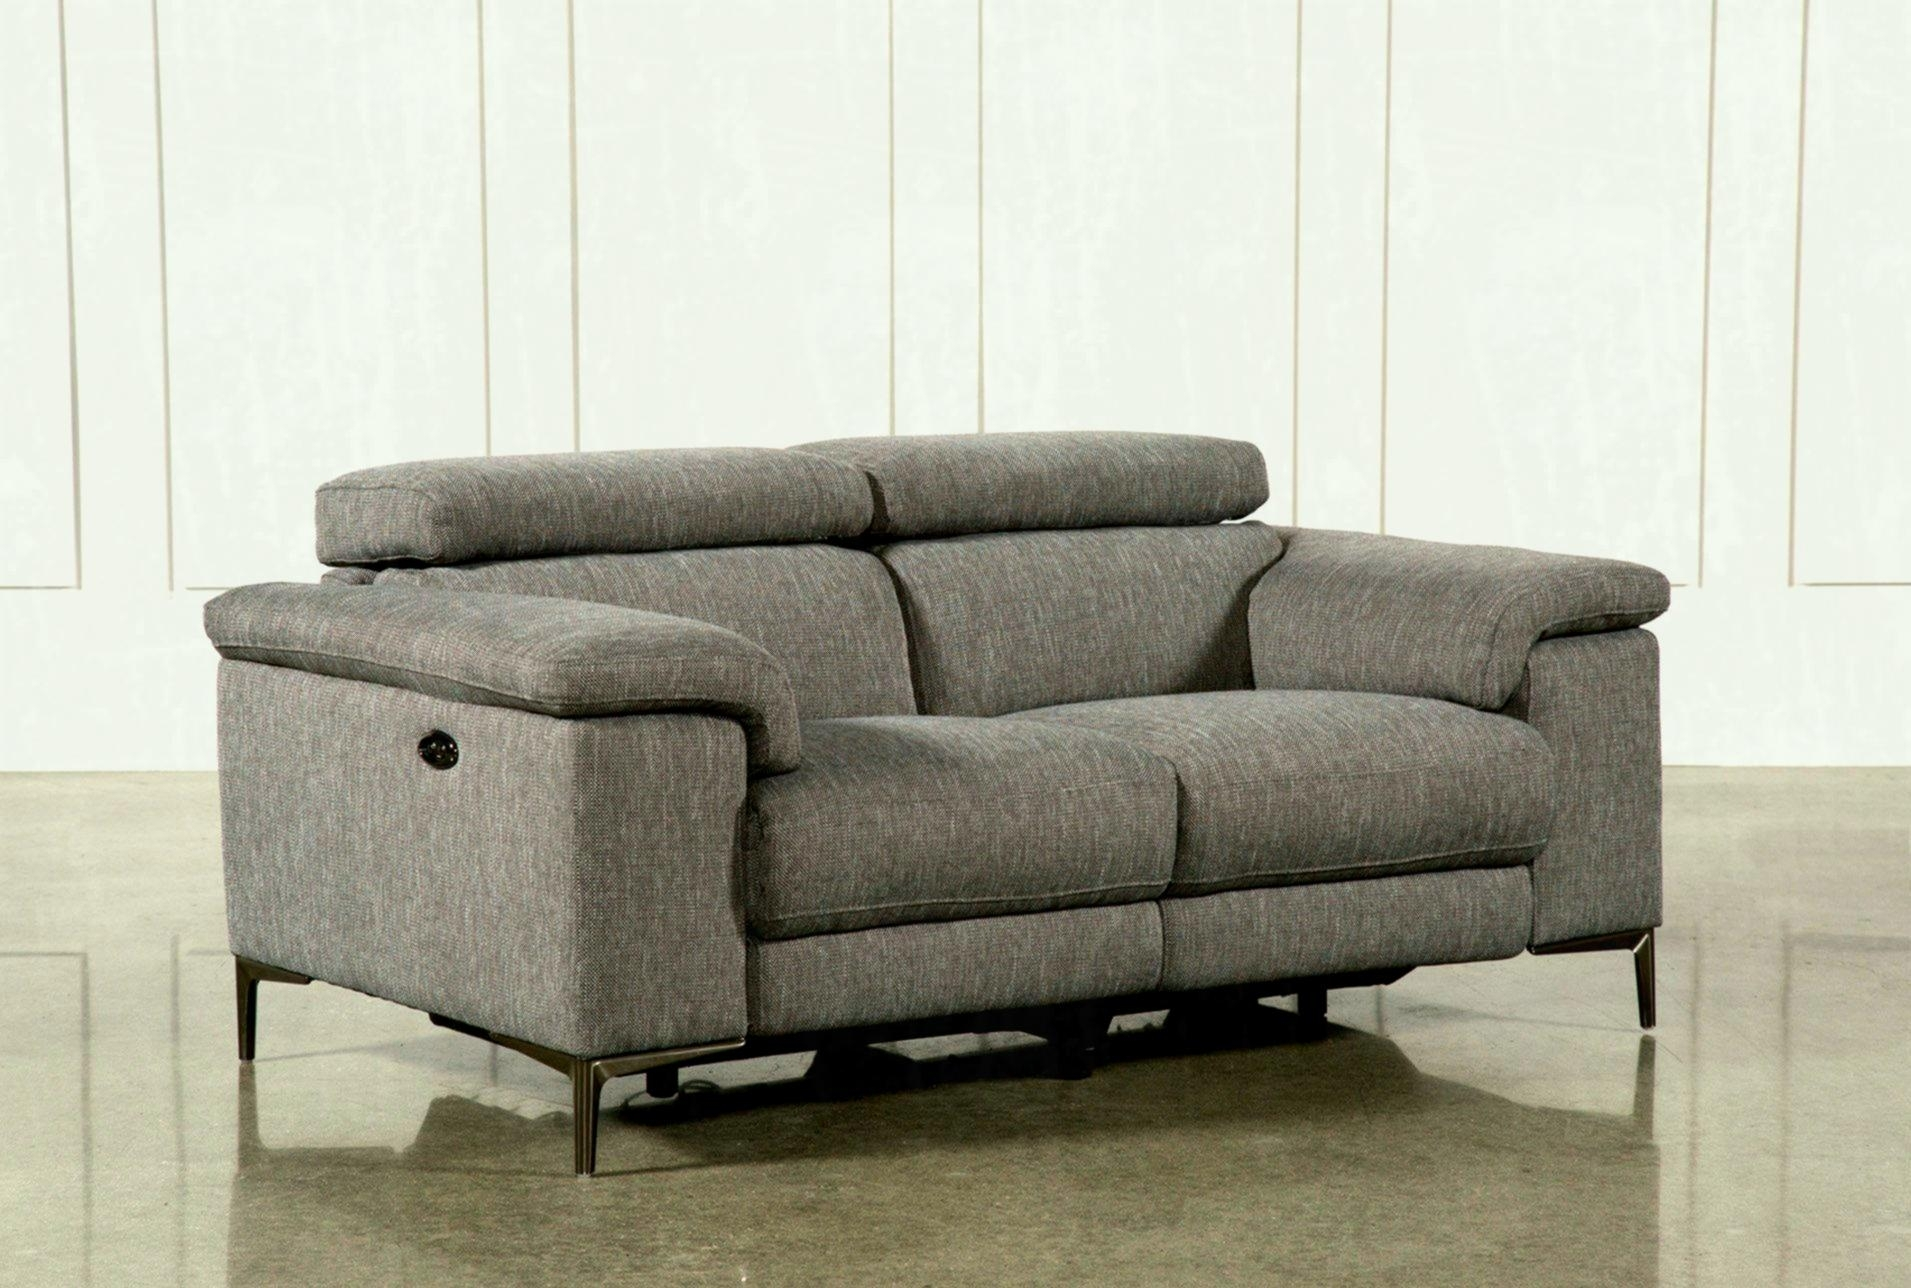 Added To Cart Delano Piece Sectional W Laf Oversized Chaise Living within Delano 2 Piece Sectionals With Laf Oversized Chaise (Image 3 of 30)